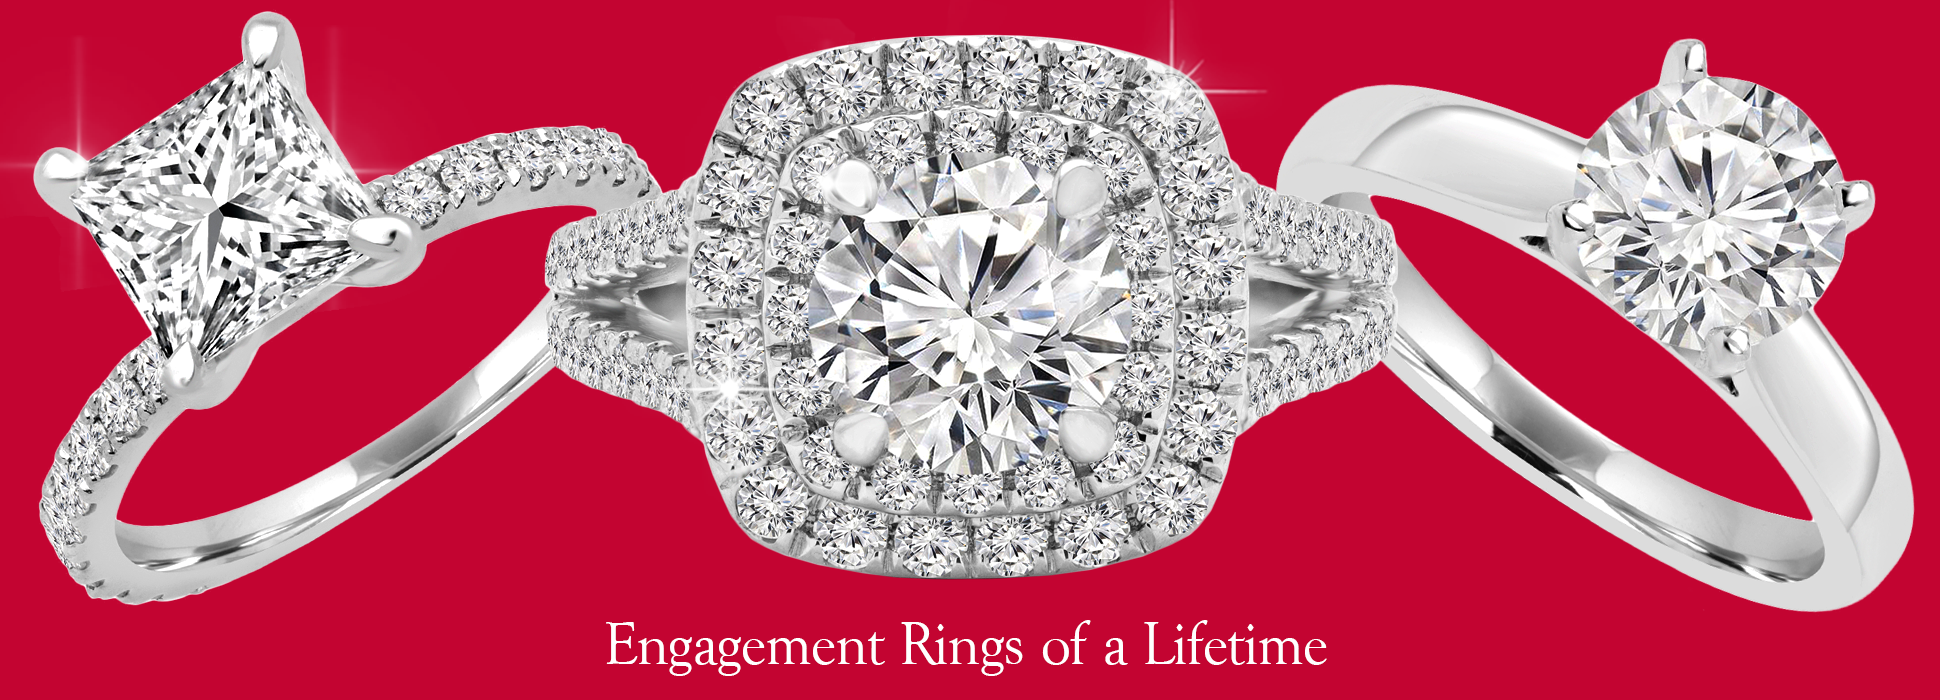 once in a lifetime engagement rings